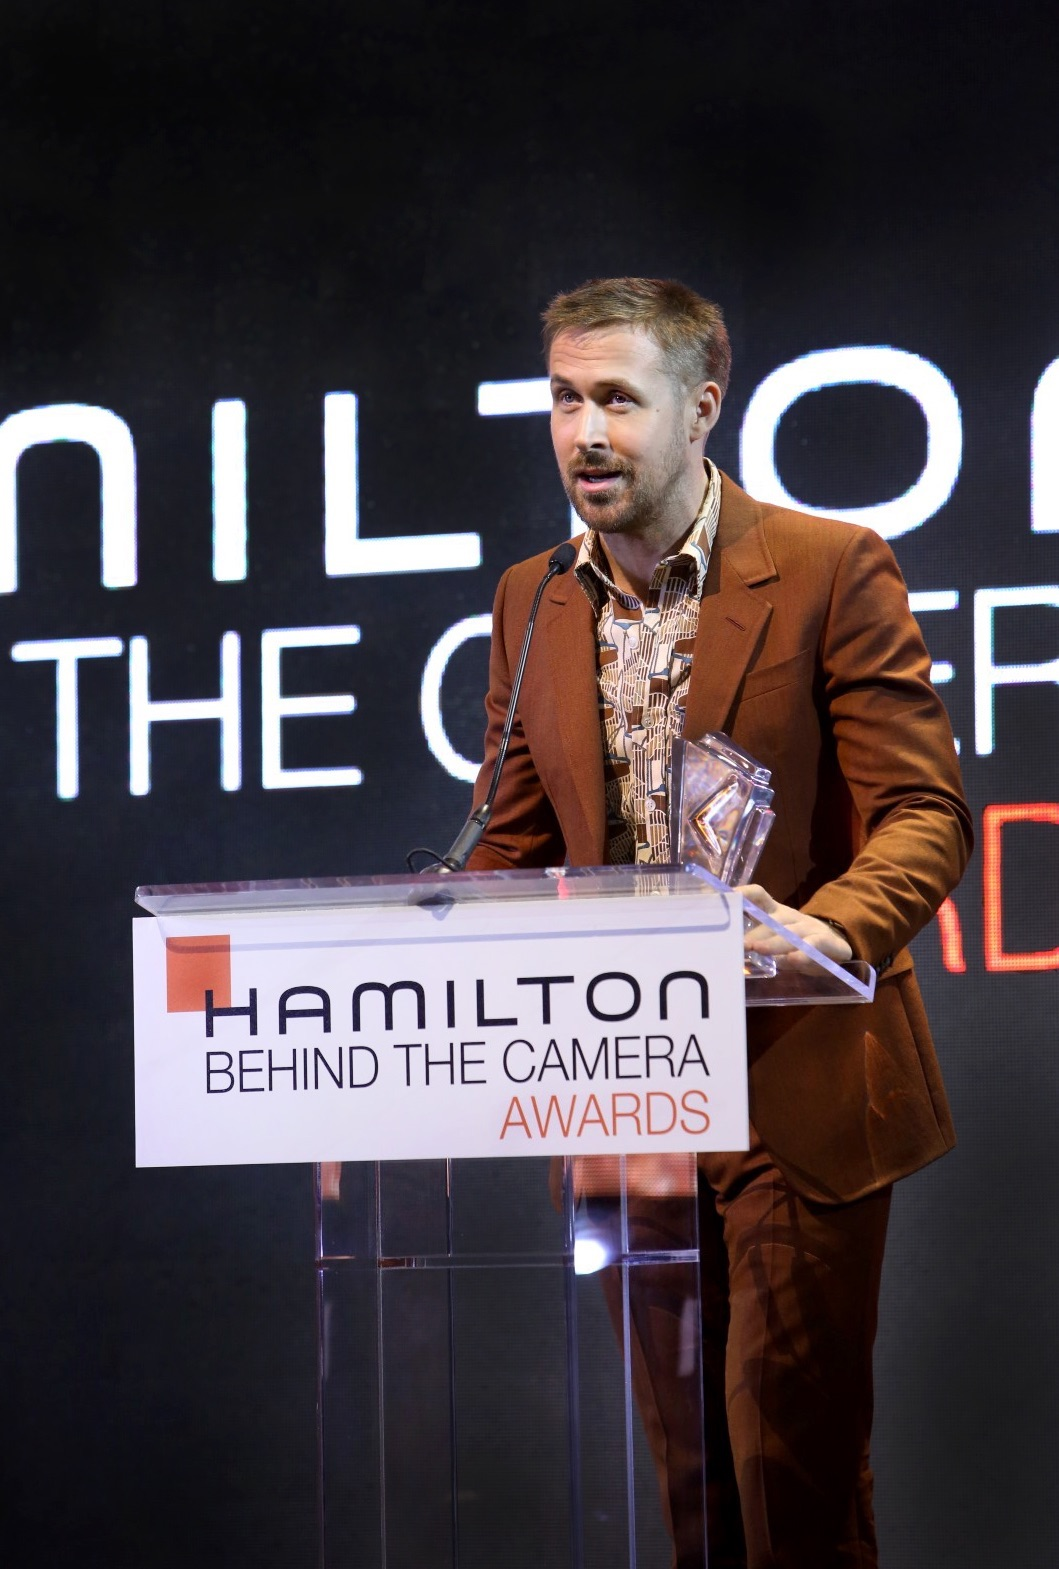 Hamilton-Behind-the-Camera-Awards-2018-3